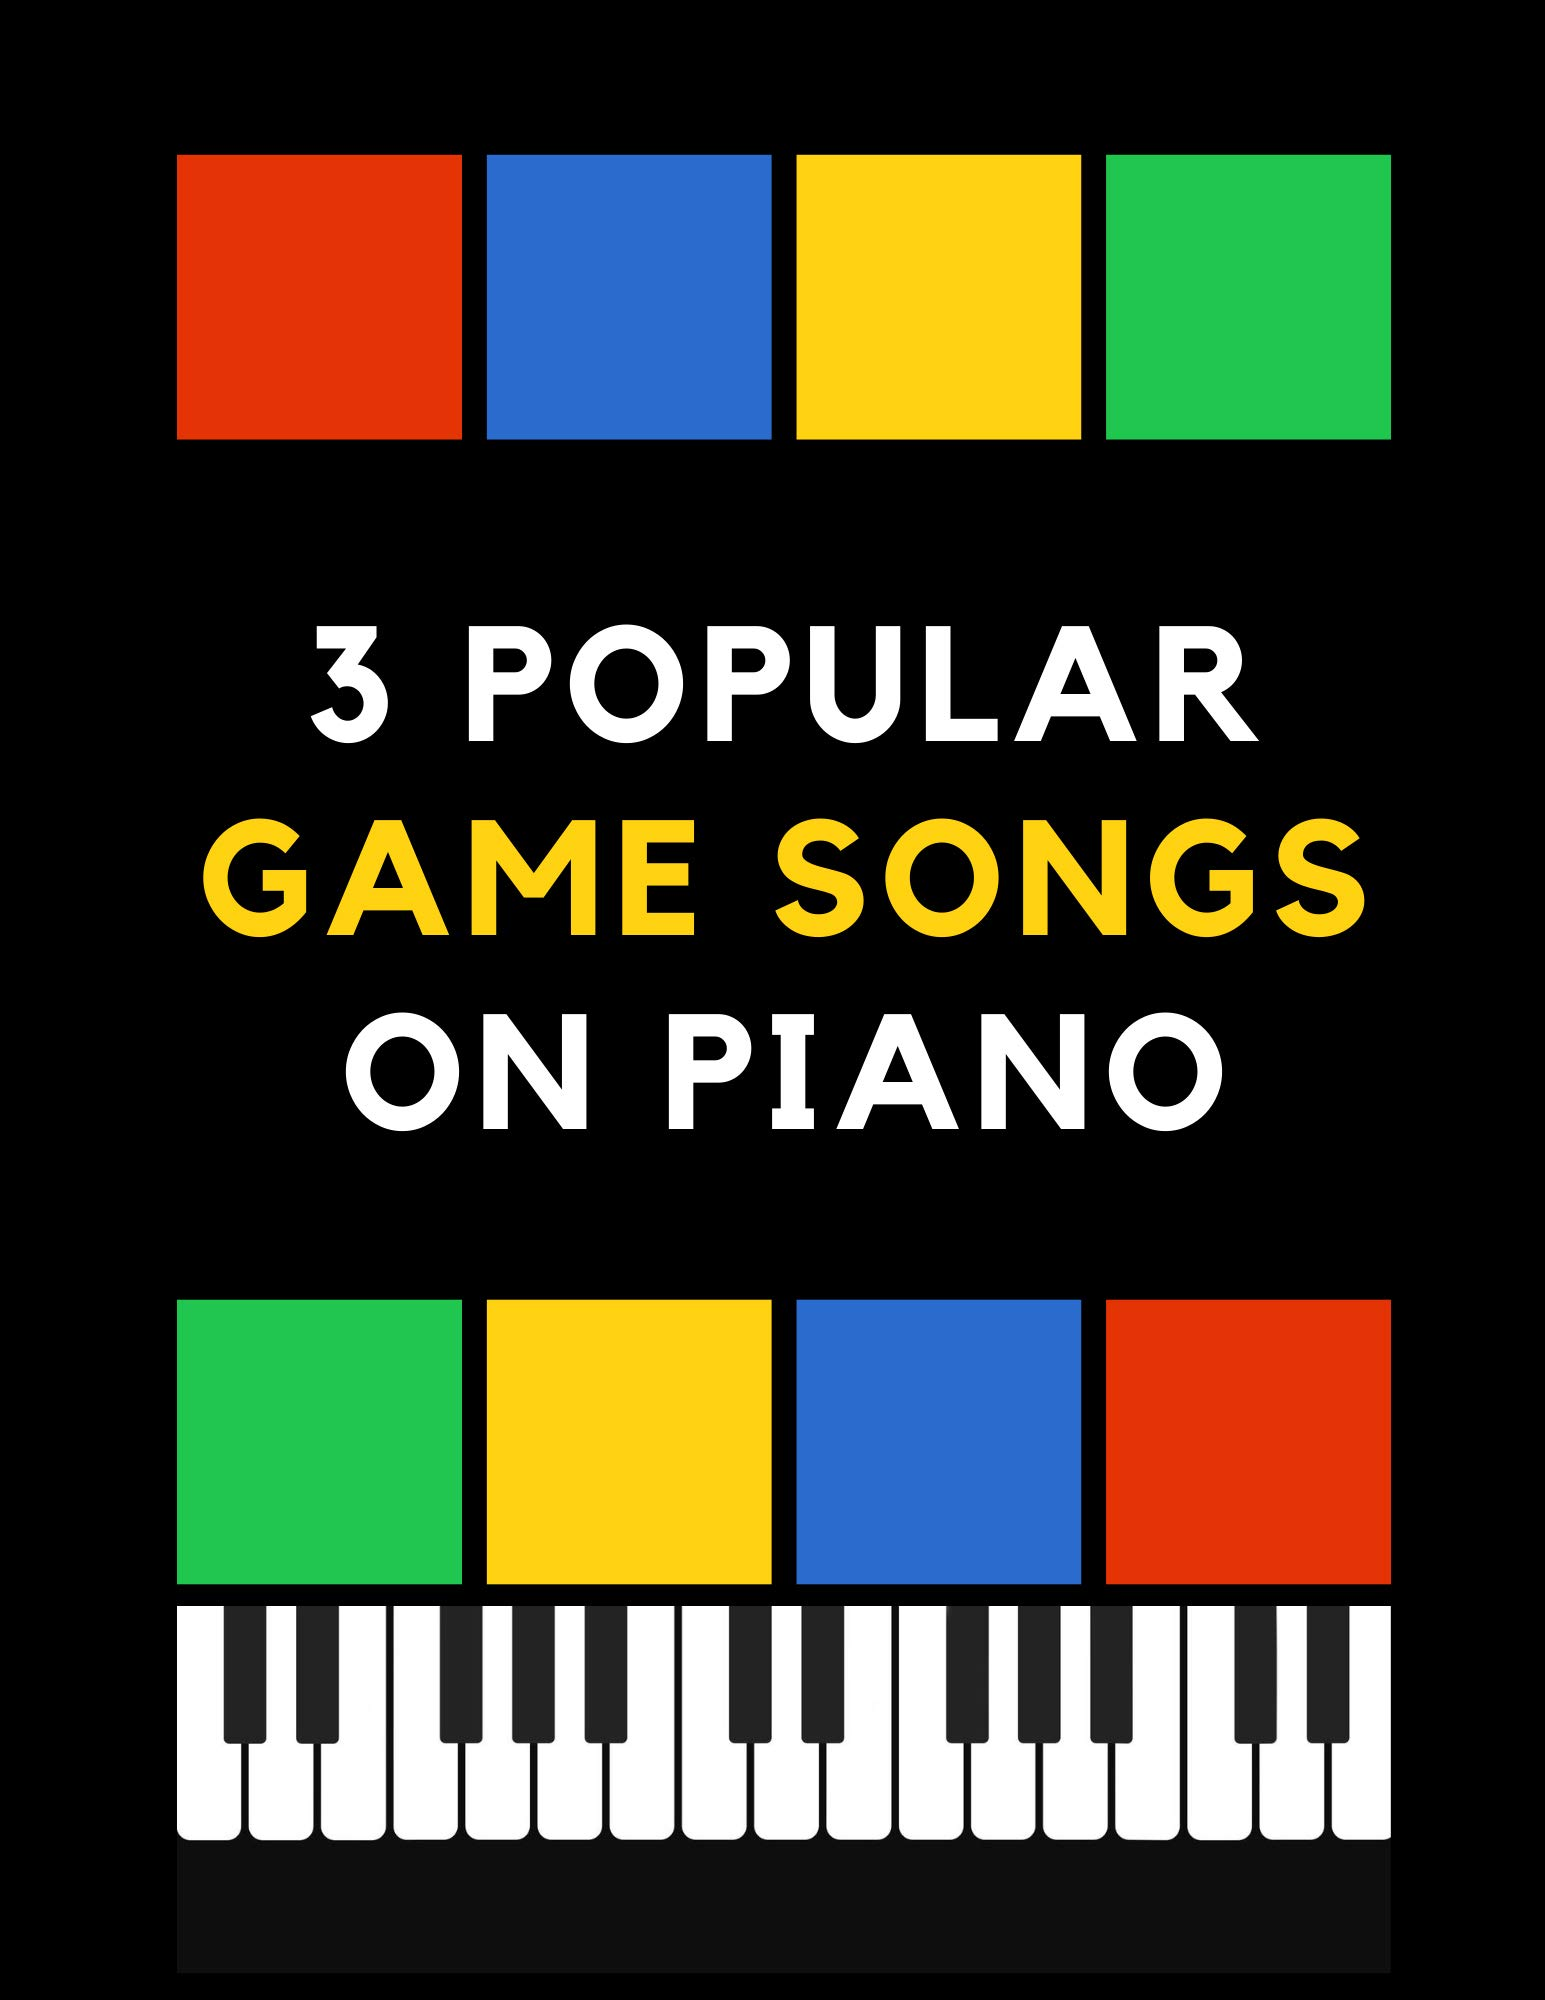 3 Popular Game Songs on Piano: Super Mario Bros, Megalovania, Tetris: The Best Retro Game Themes | EASY Piano Sheet Music for Beginners. Teach Yourself How to Play. Video Tutorial, BIG Notes